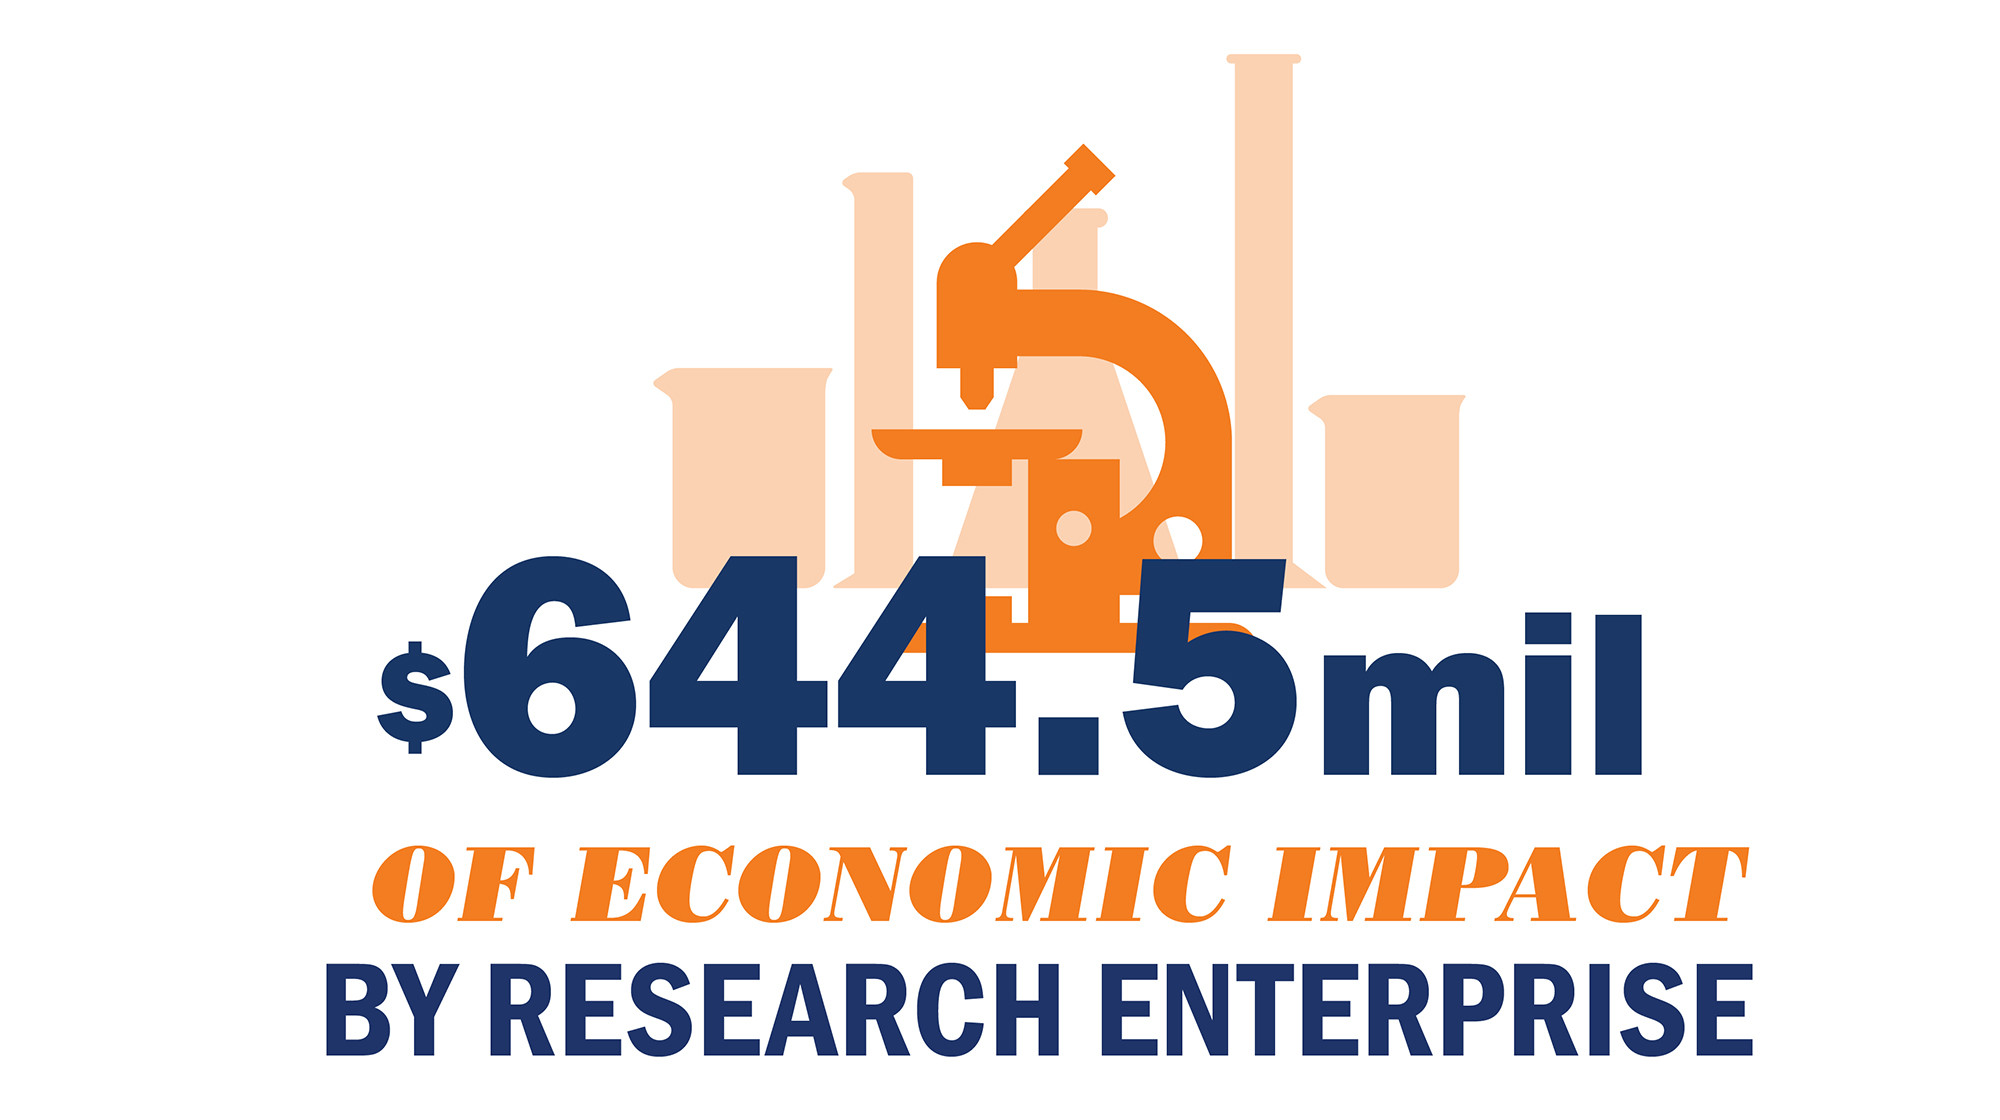 Research enterprise